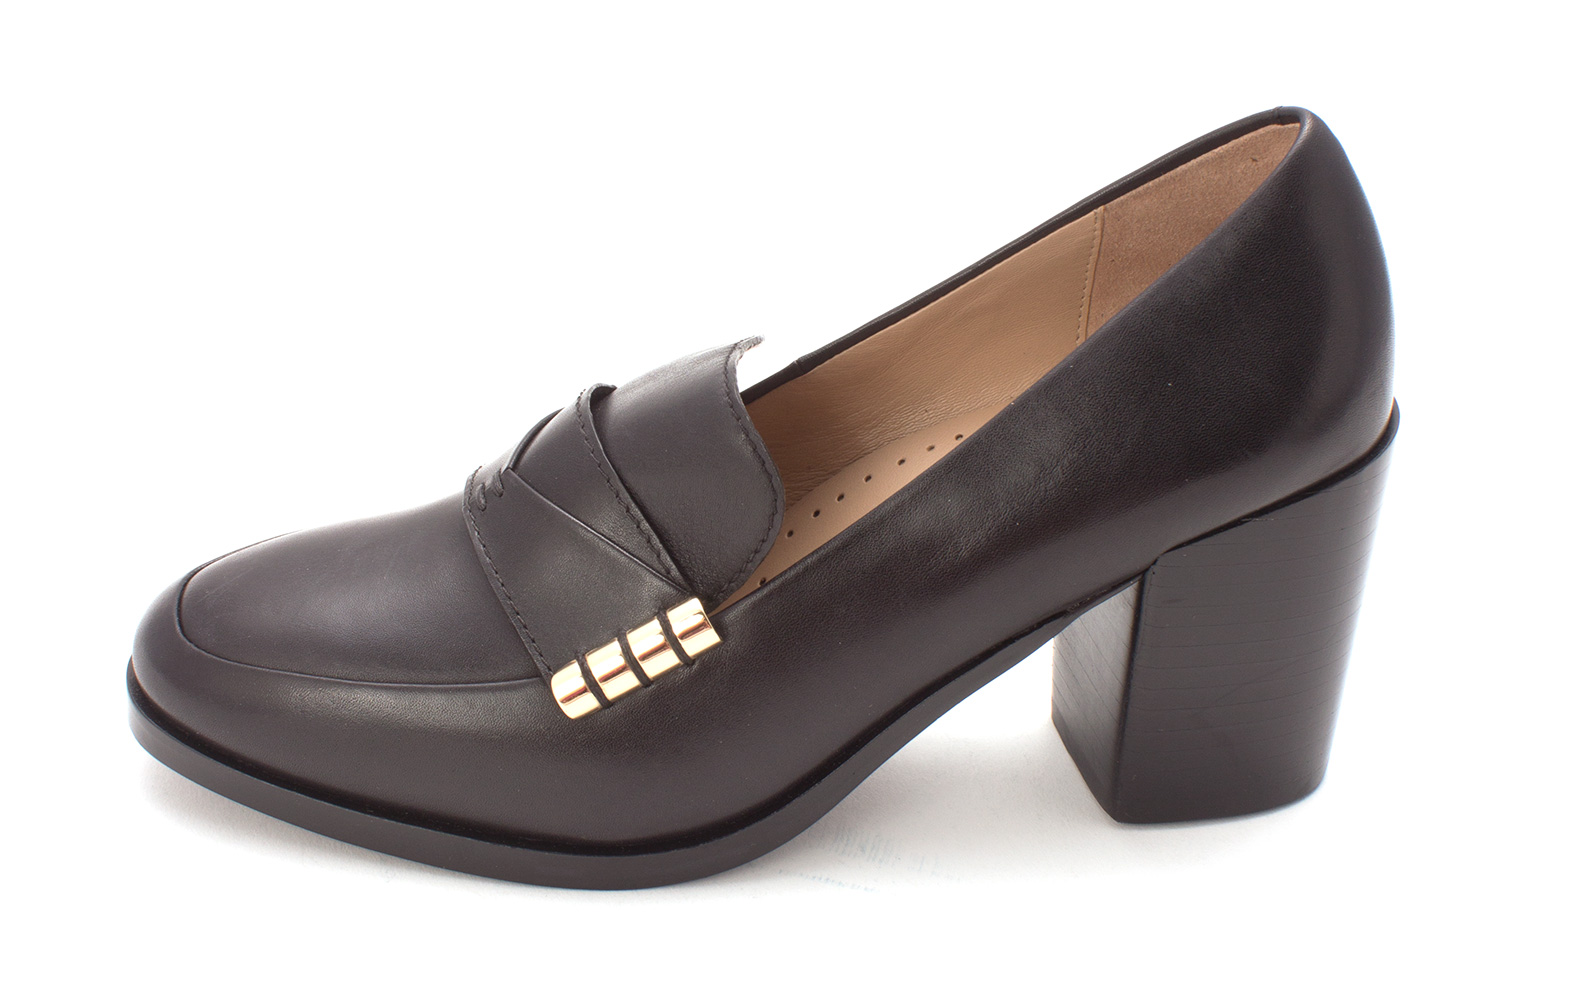 Cole Haan Womens Averysam Closed Toe Classic Pumps Black Size 6.0